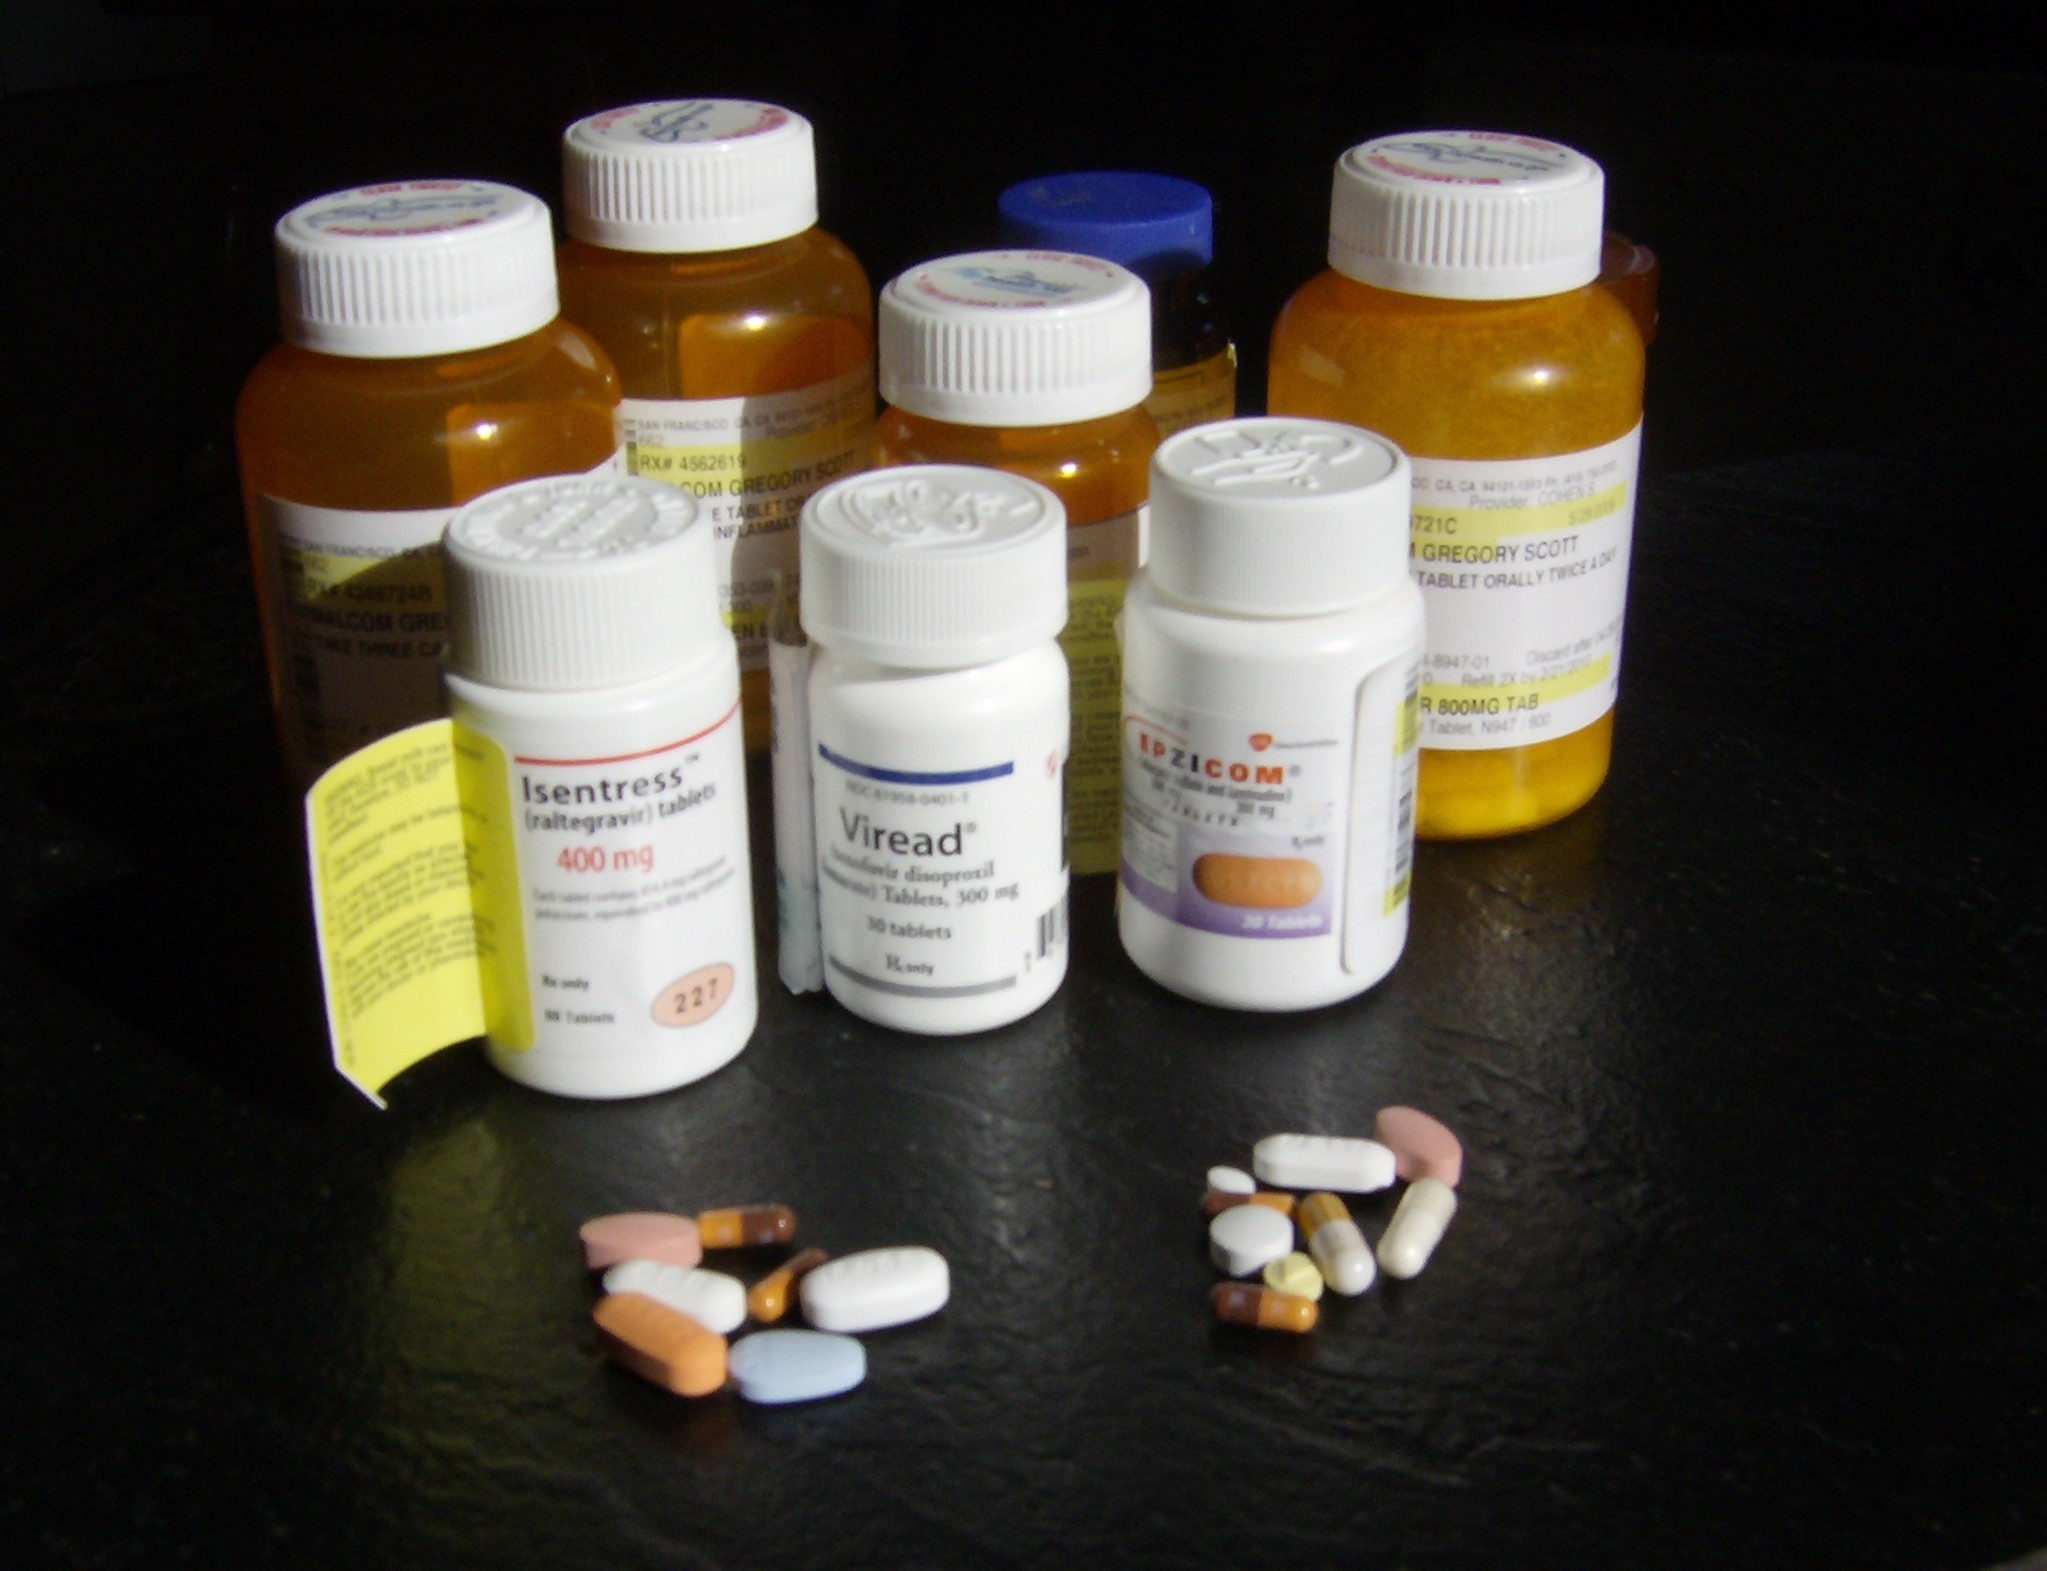 The b.i.d. reminder: I owe my life to protease inhibitors.